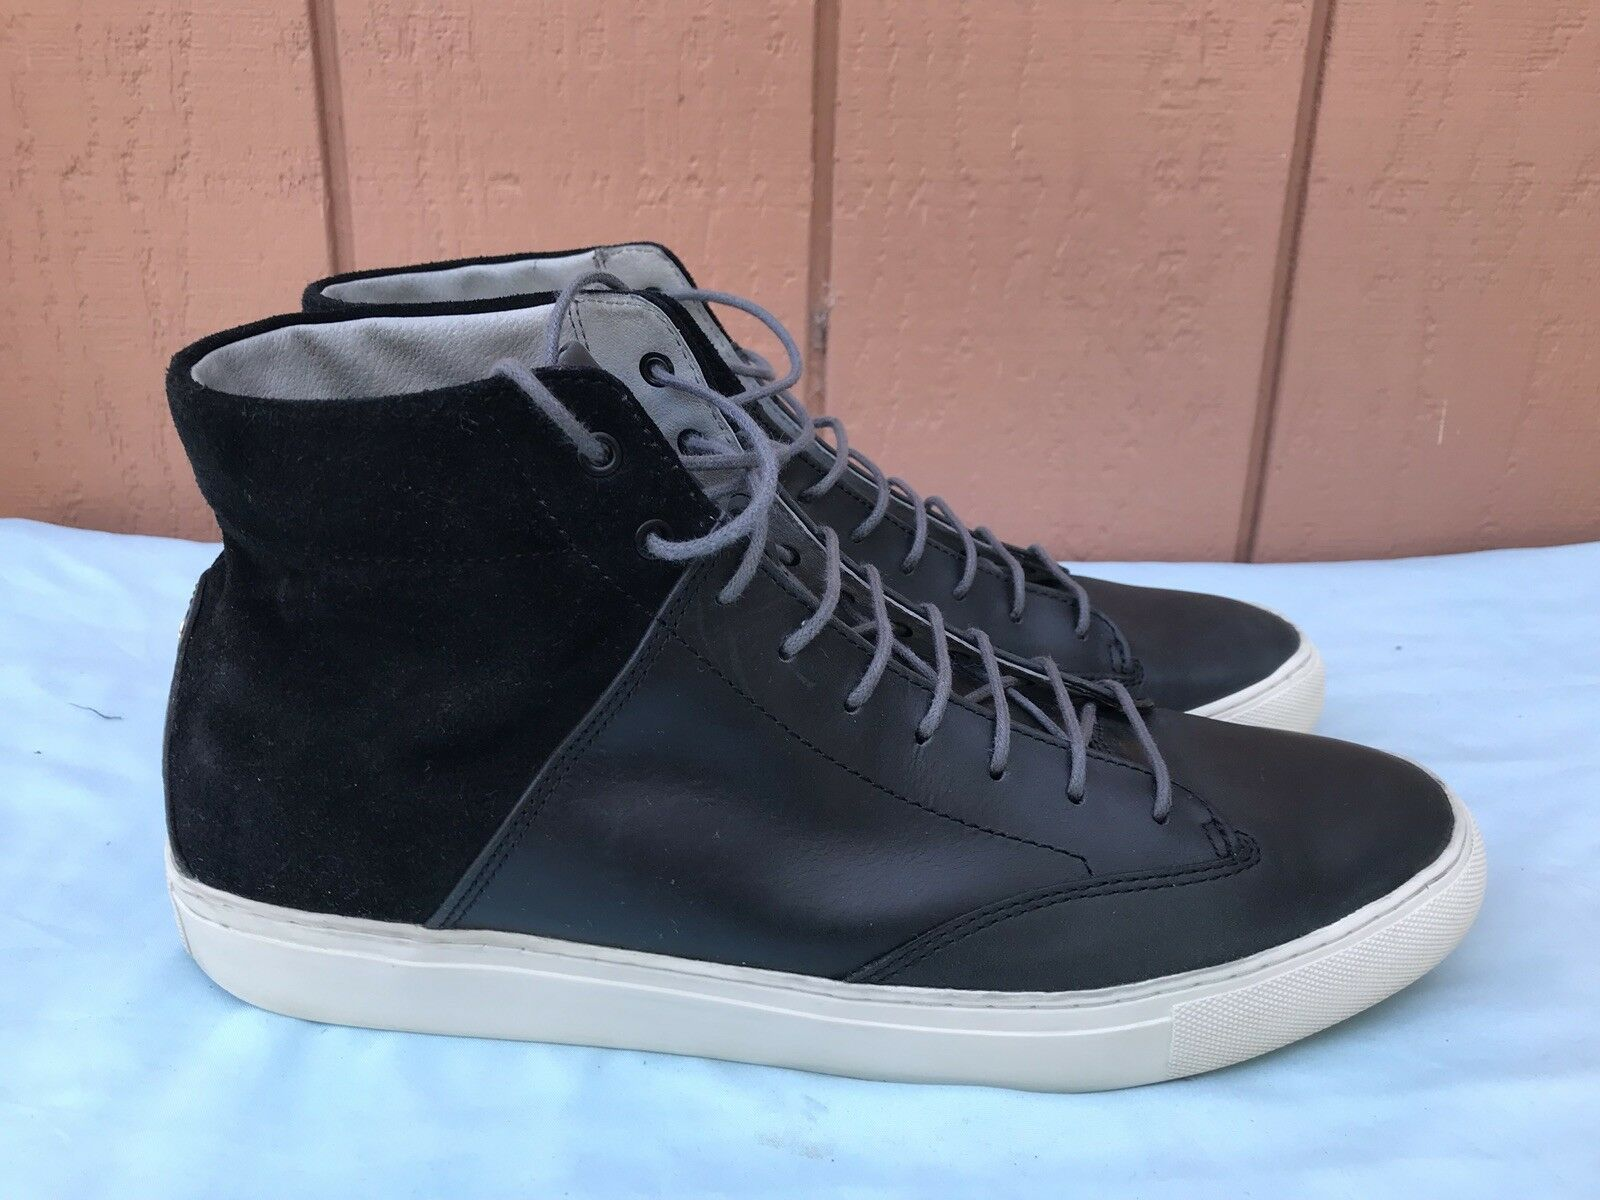 EUC TCG 46 Men's US 13 Premium shoes Porter All Leather High Top Laces Sneaker AY